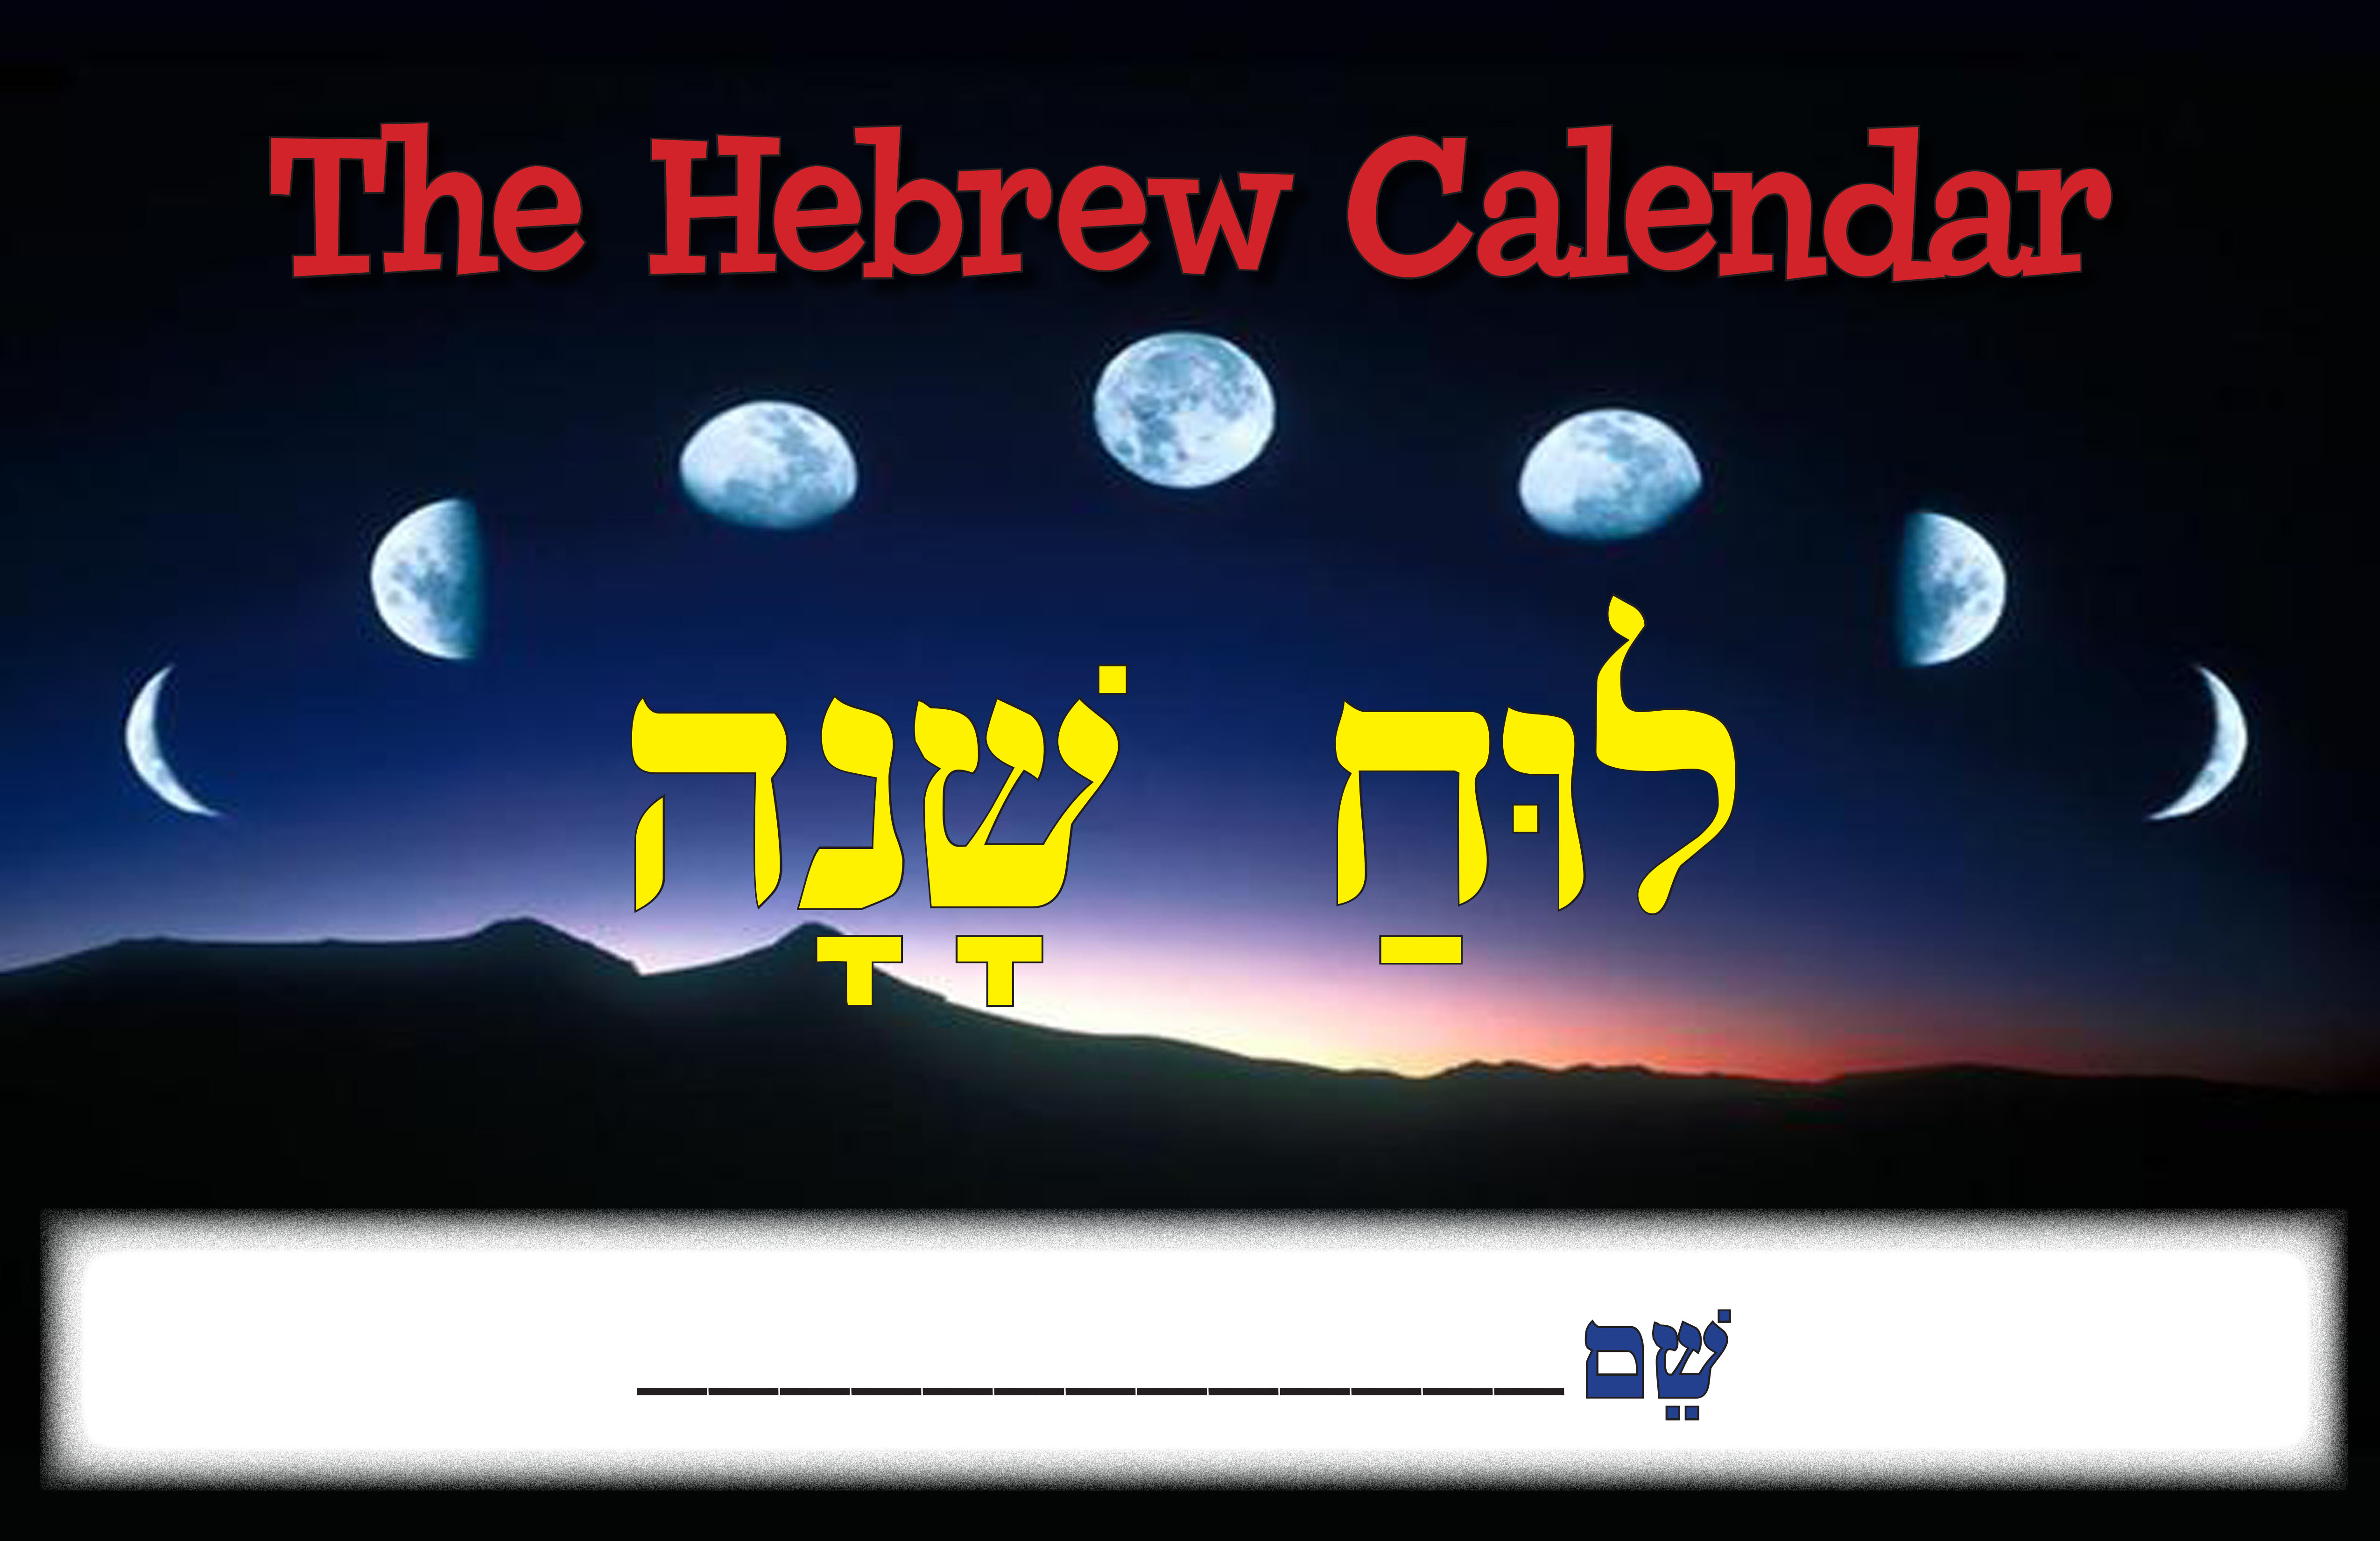 Hebrew Calendar Curriculum